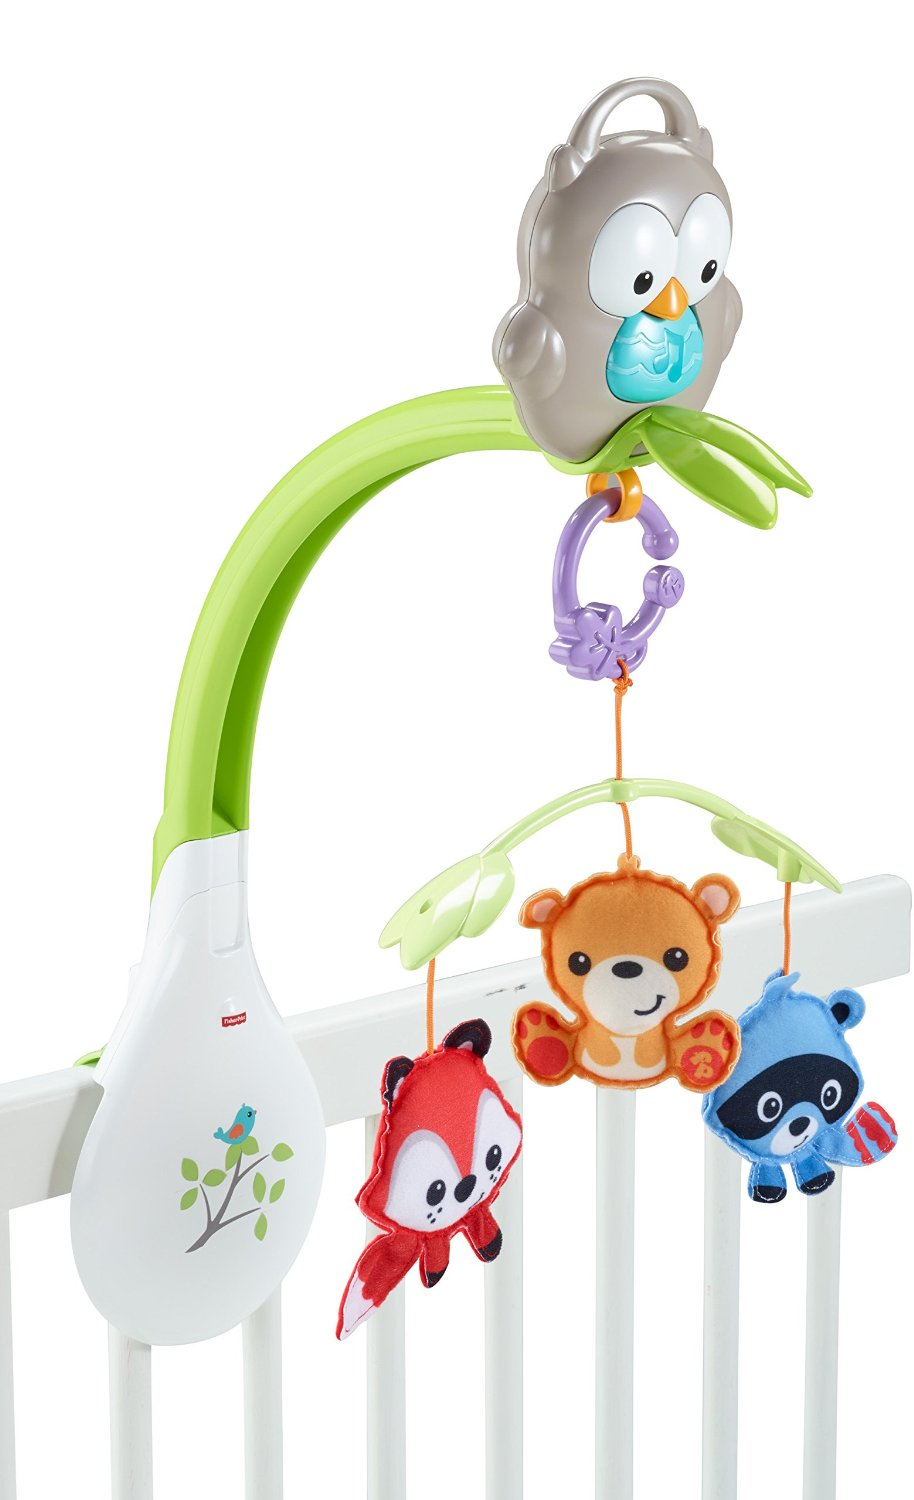 Woodland friends 3 in 1 musical mobile